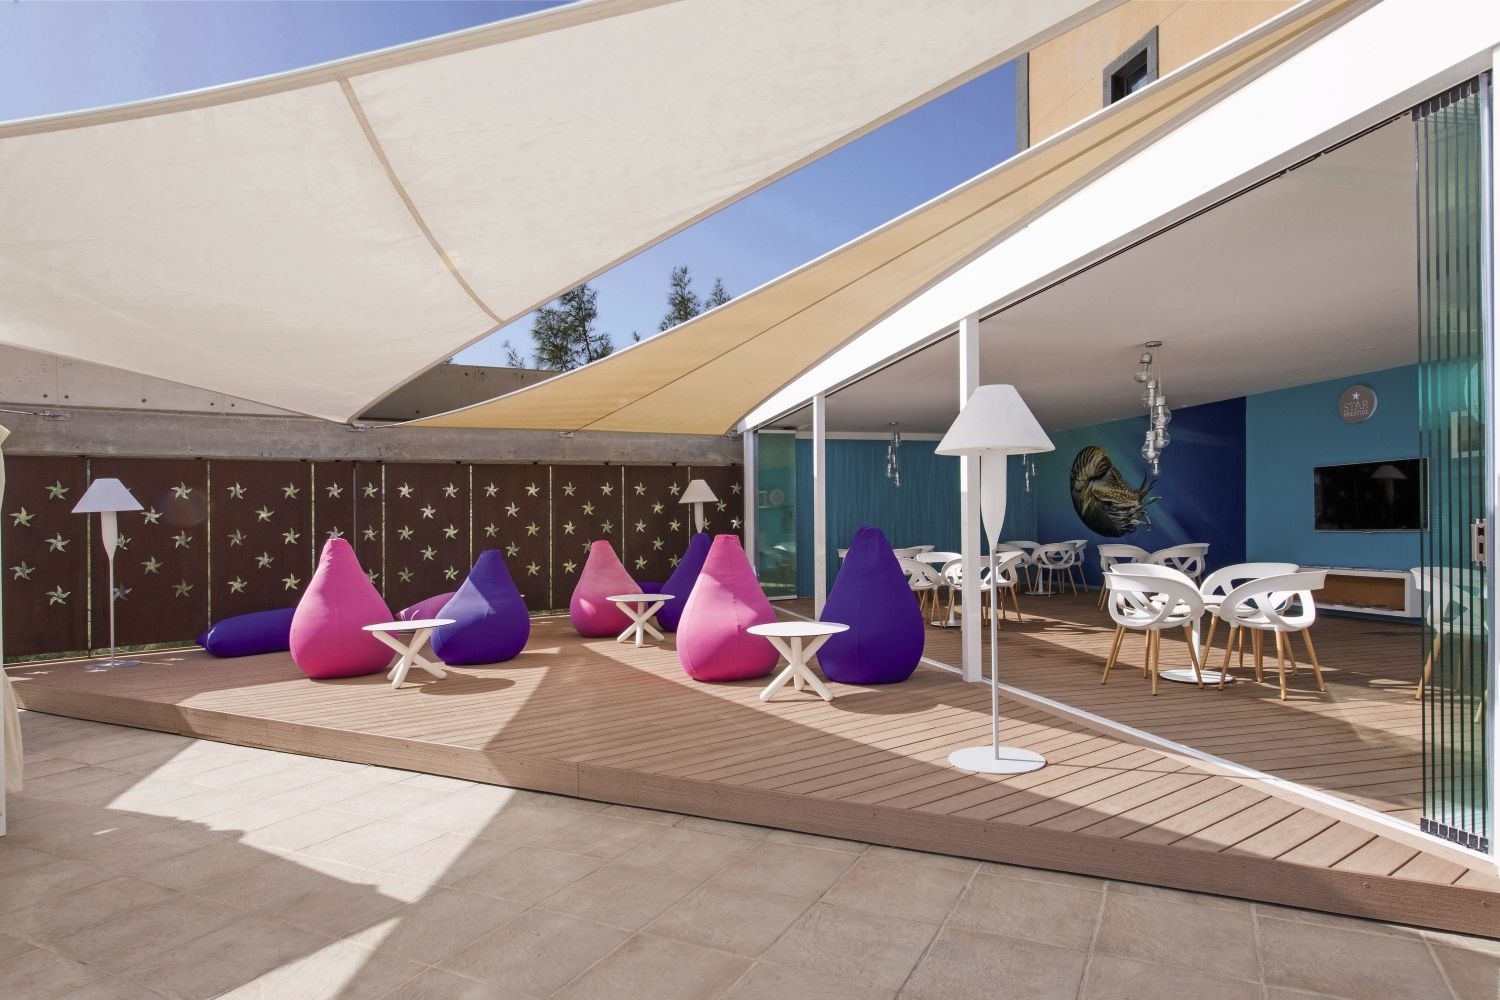 Iberostar Selection Fuerteventura Palace - 5* pas cher photo 2